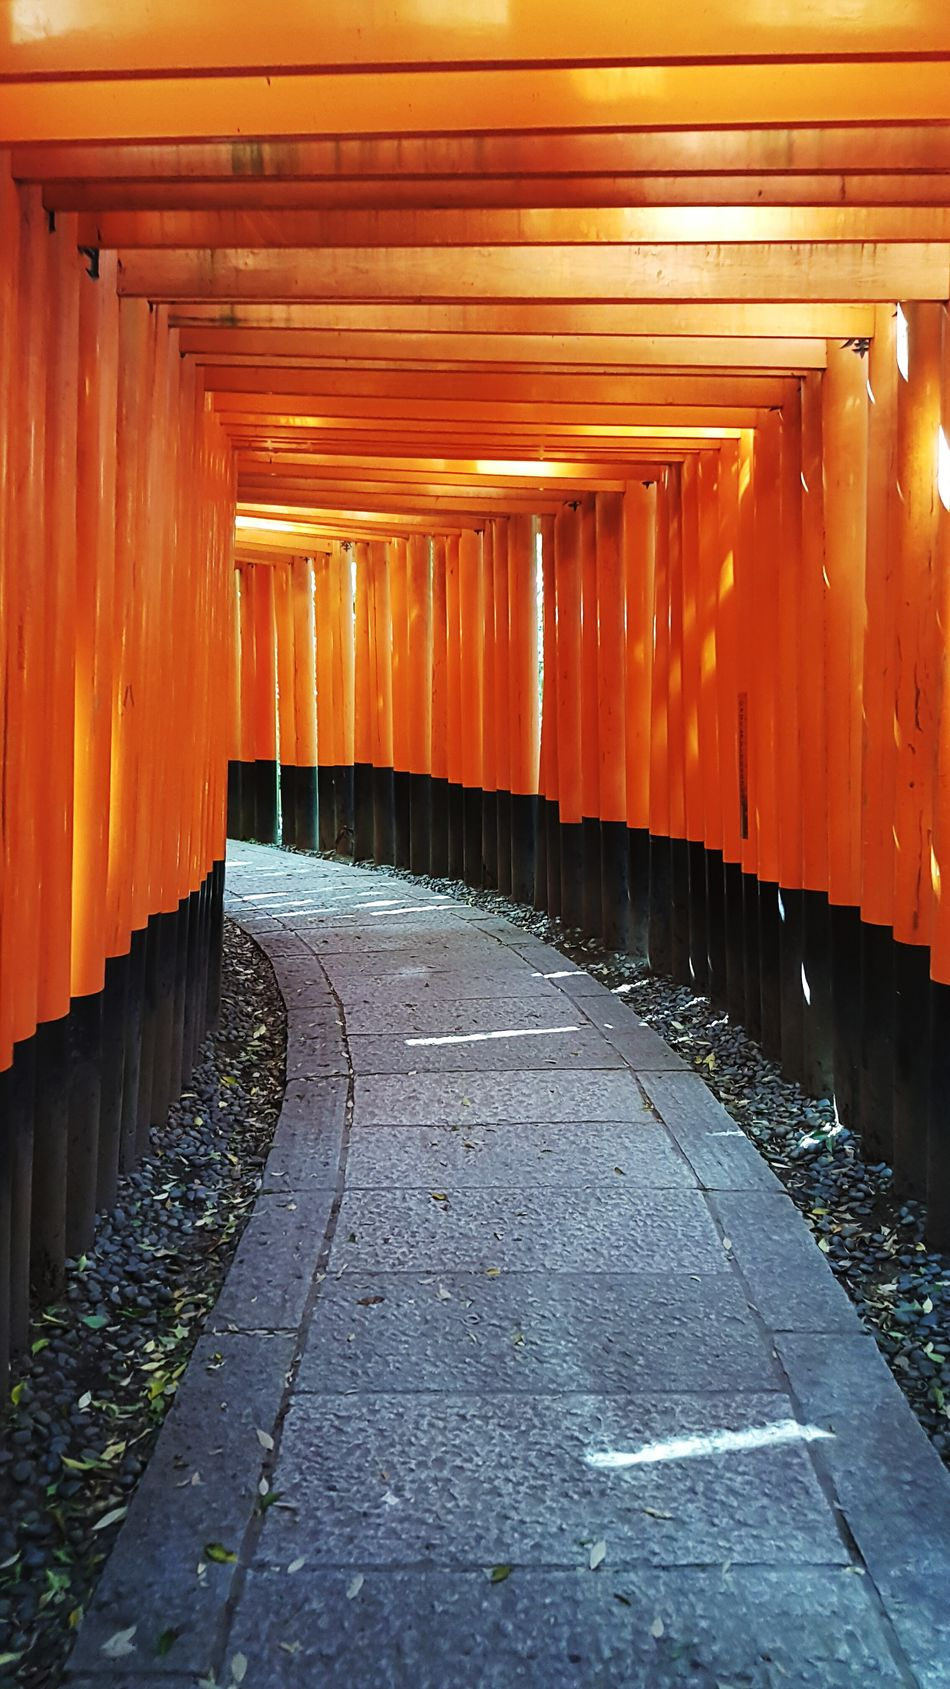 Architecture Outdoors No People Japan Japanese Temple Fushimi Inari ShrineFull Frame Kyoto Red Red Gate Torii Gate TORII Road Travel Travel Destinations Travel Photography Holiday